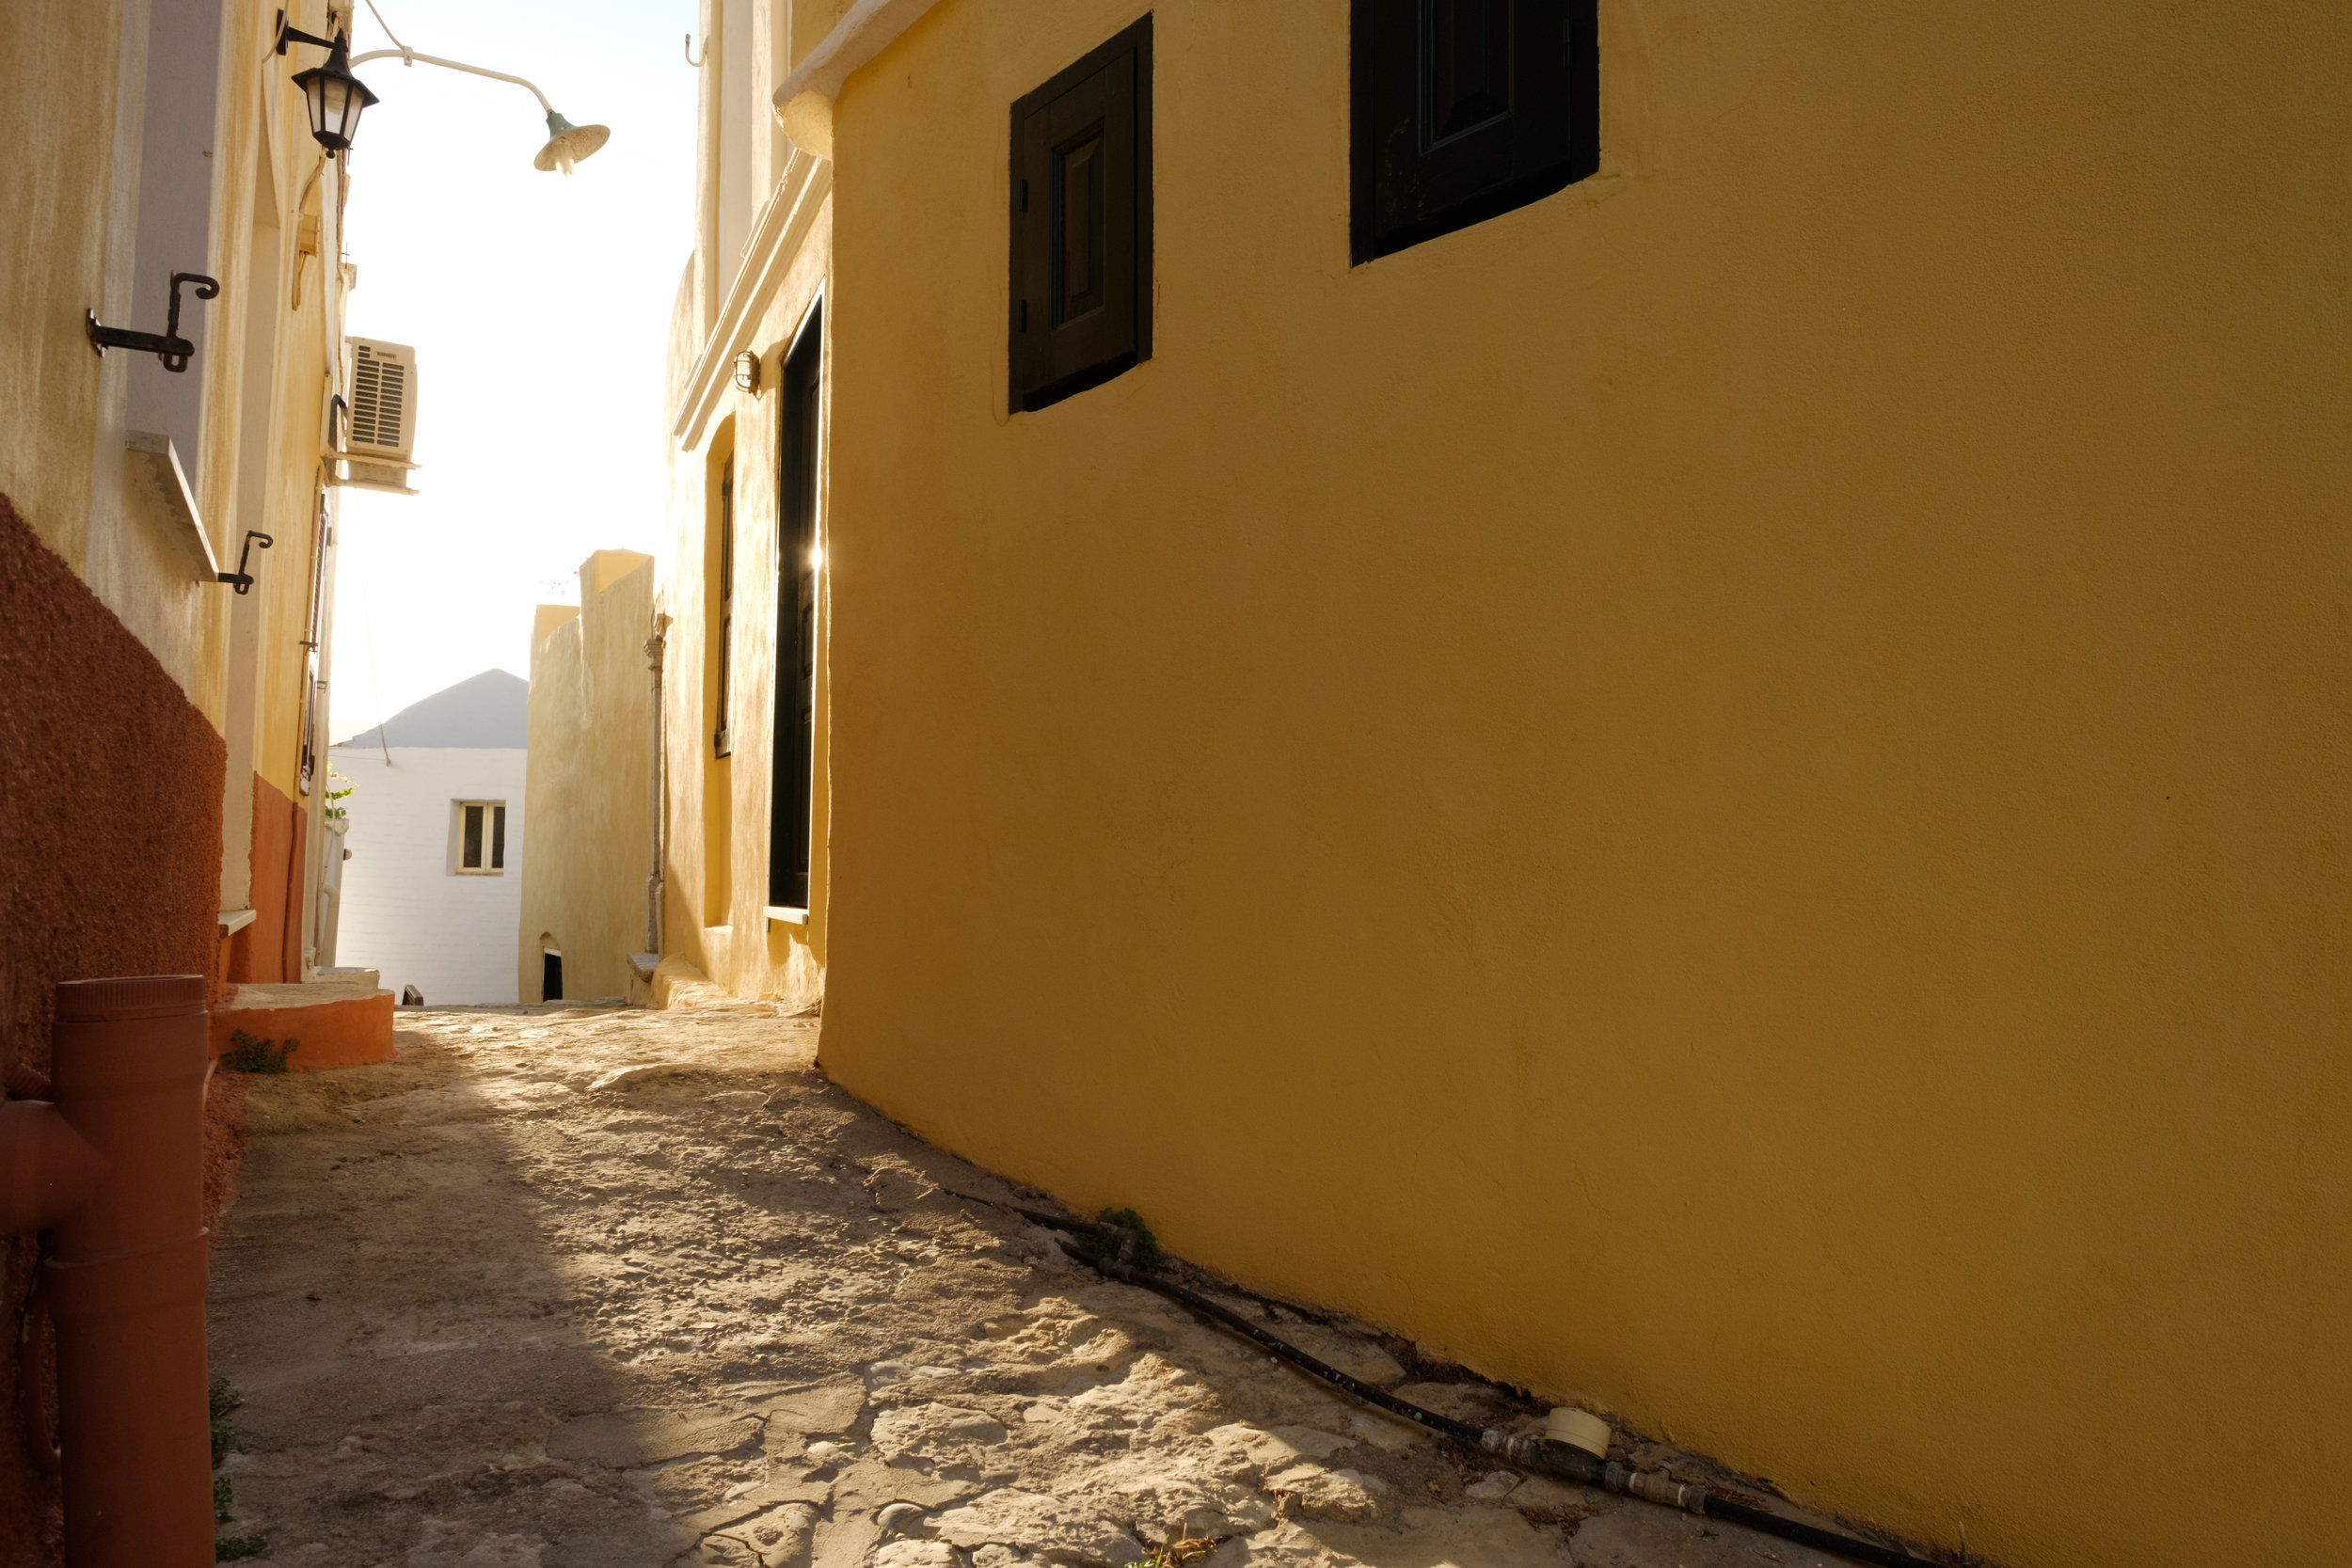 late afternoon sun in a back alley on the island of symi in greece